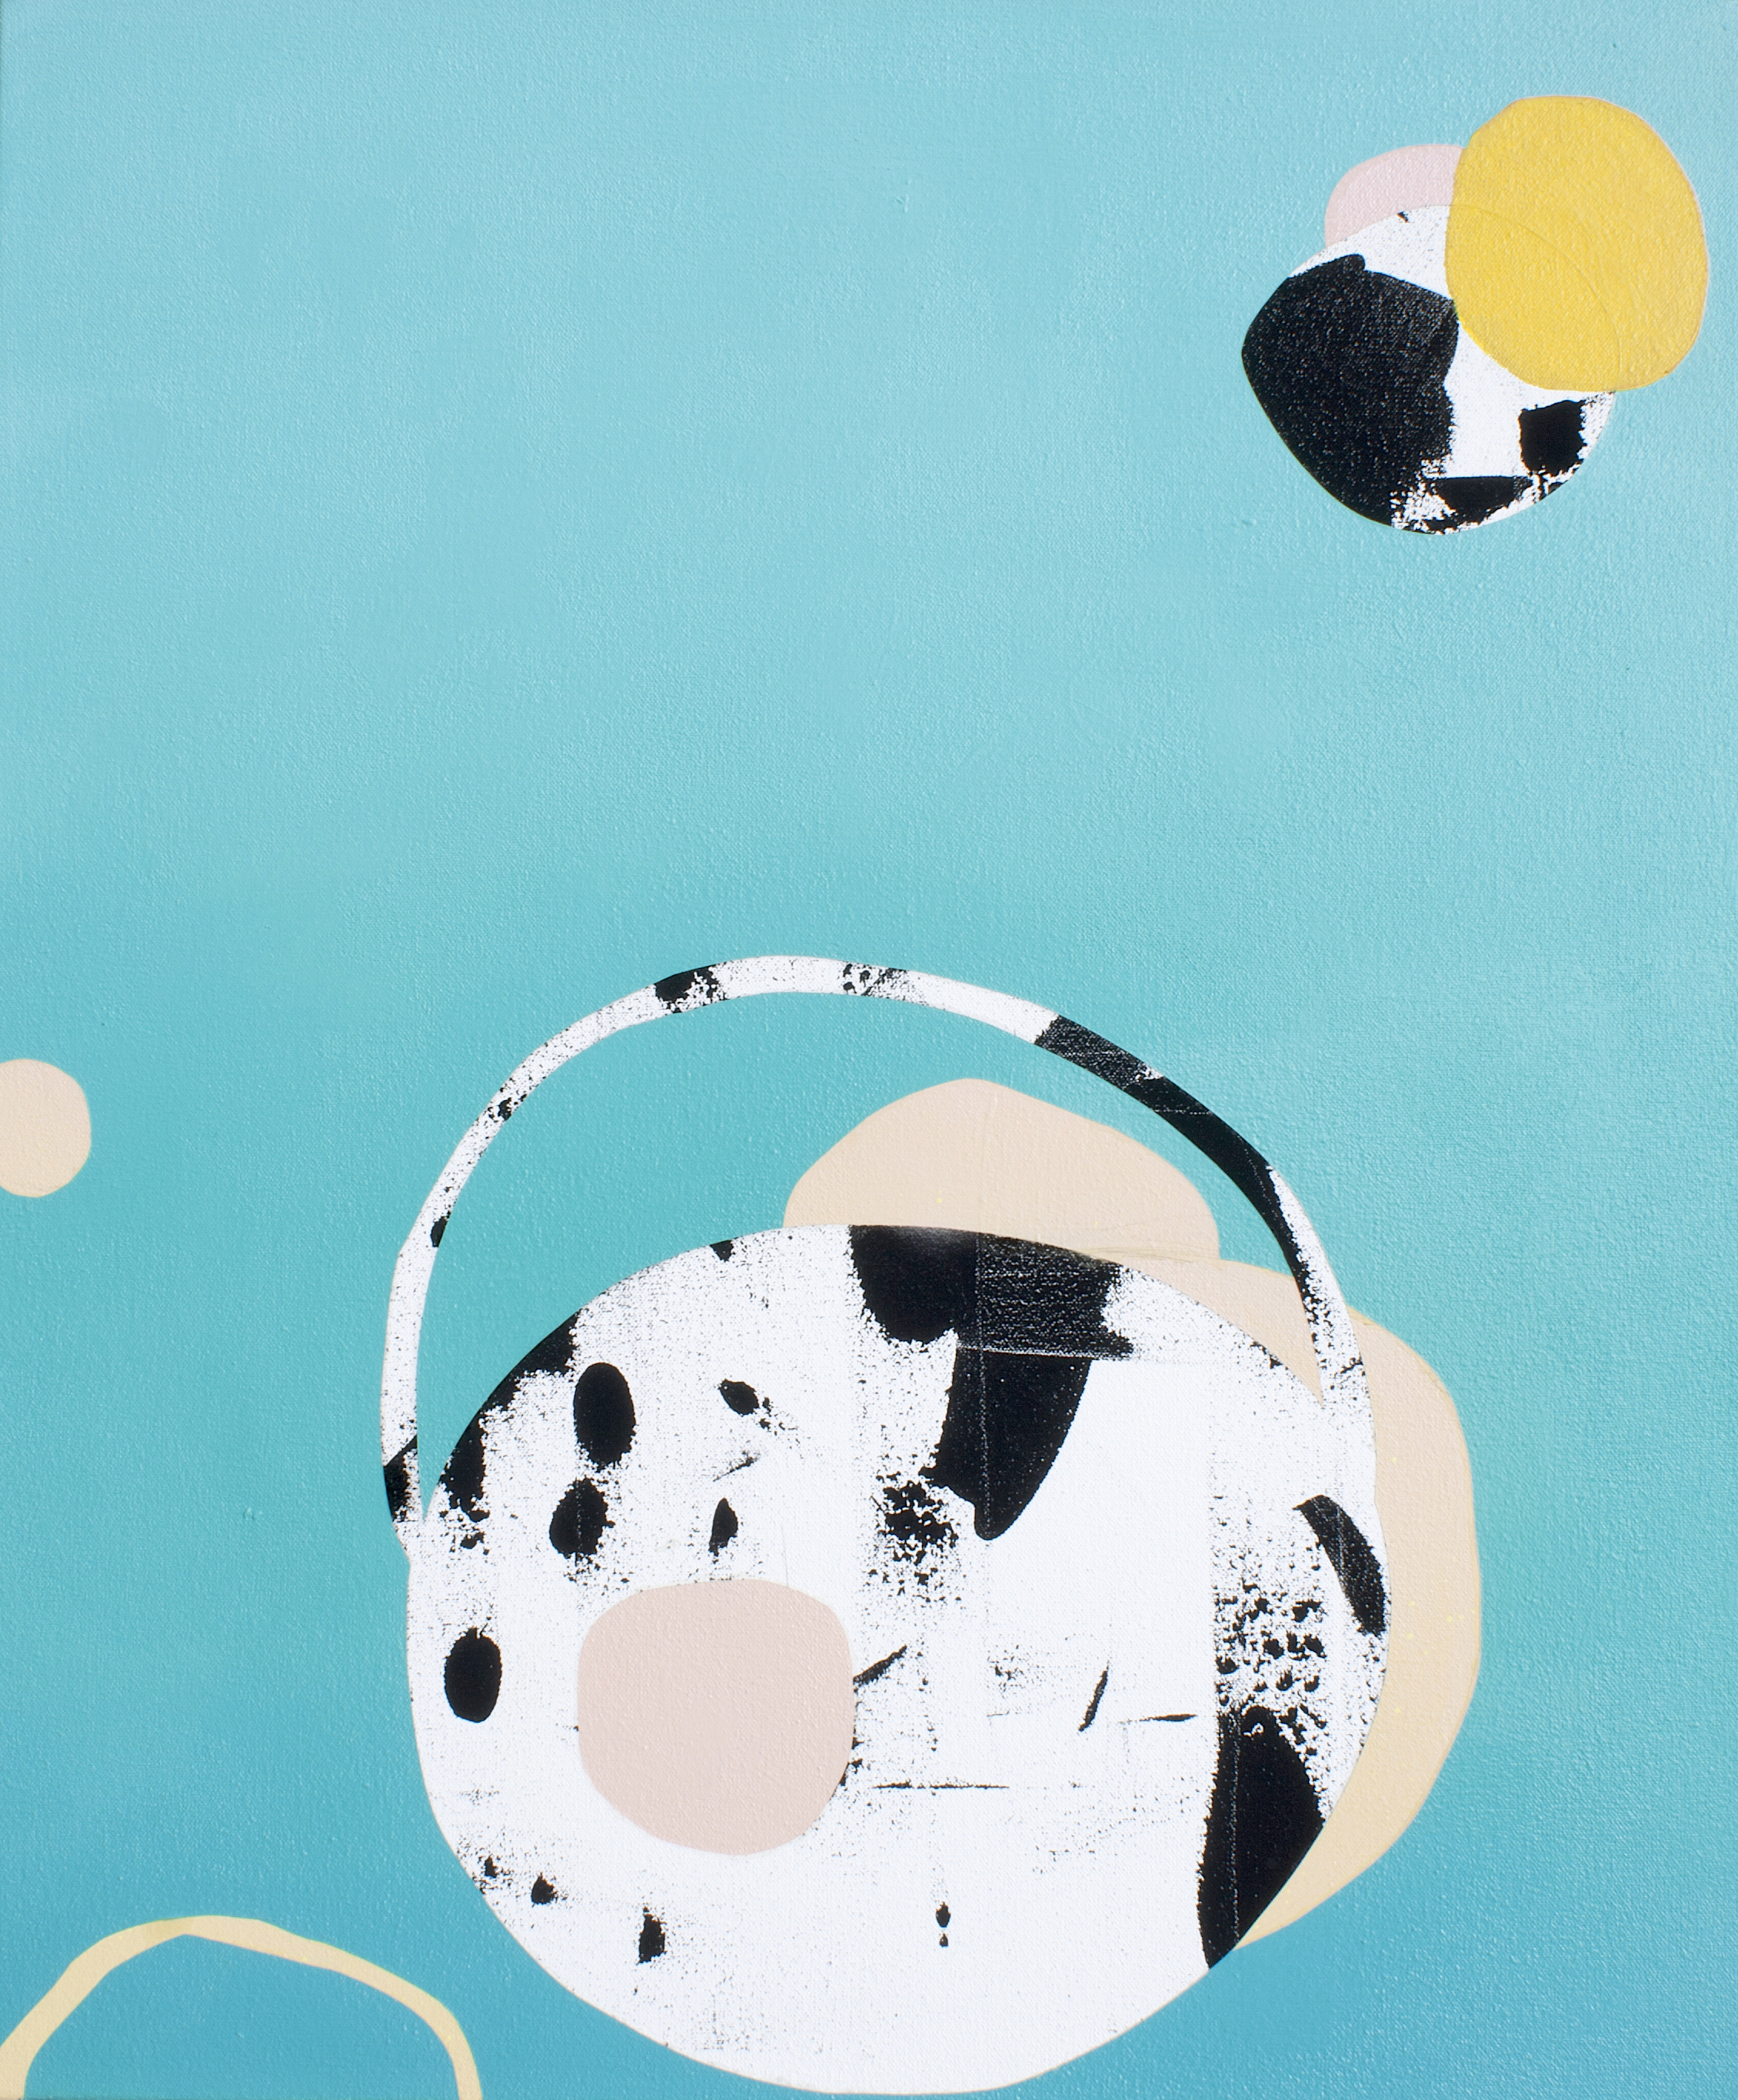 Bubble , 2019. Acrylic & oil on canvas, 26 x 20 in.